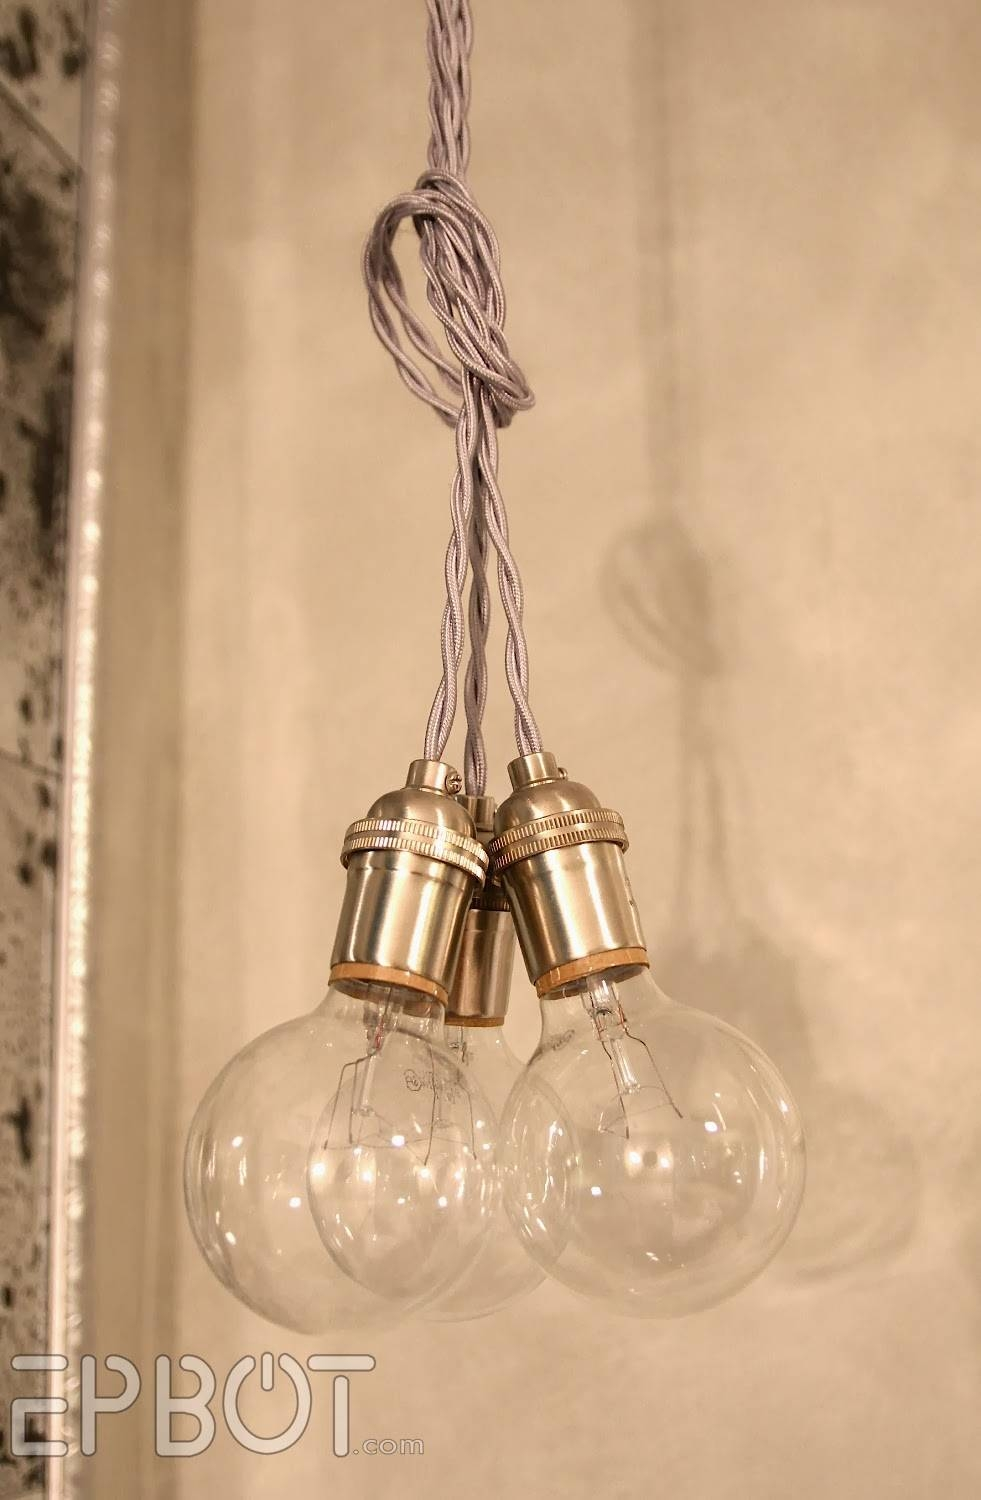 Epbot: Wire Your Own Pendant Lighting - Cheap, Easy, & Fun! regarding Bare Bulb Pendant Lighting (Image 10 of 15)